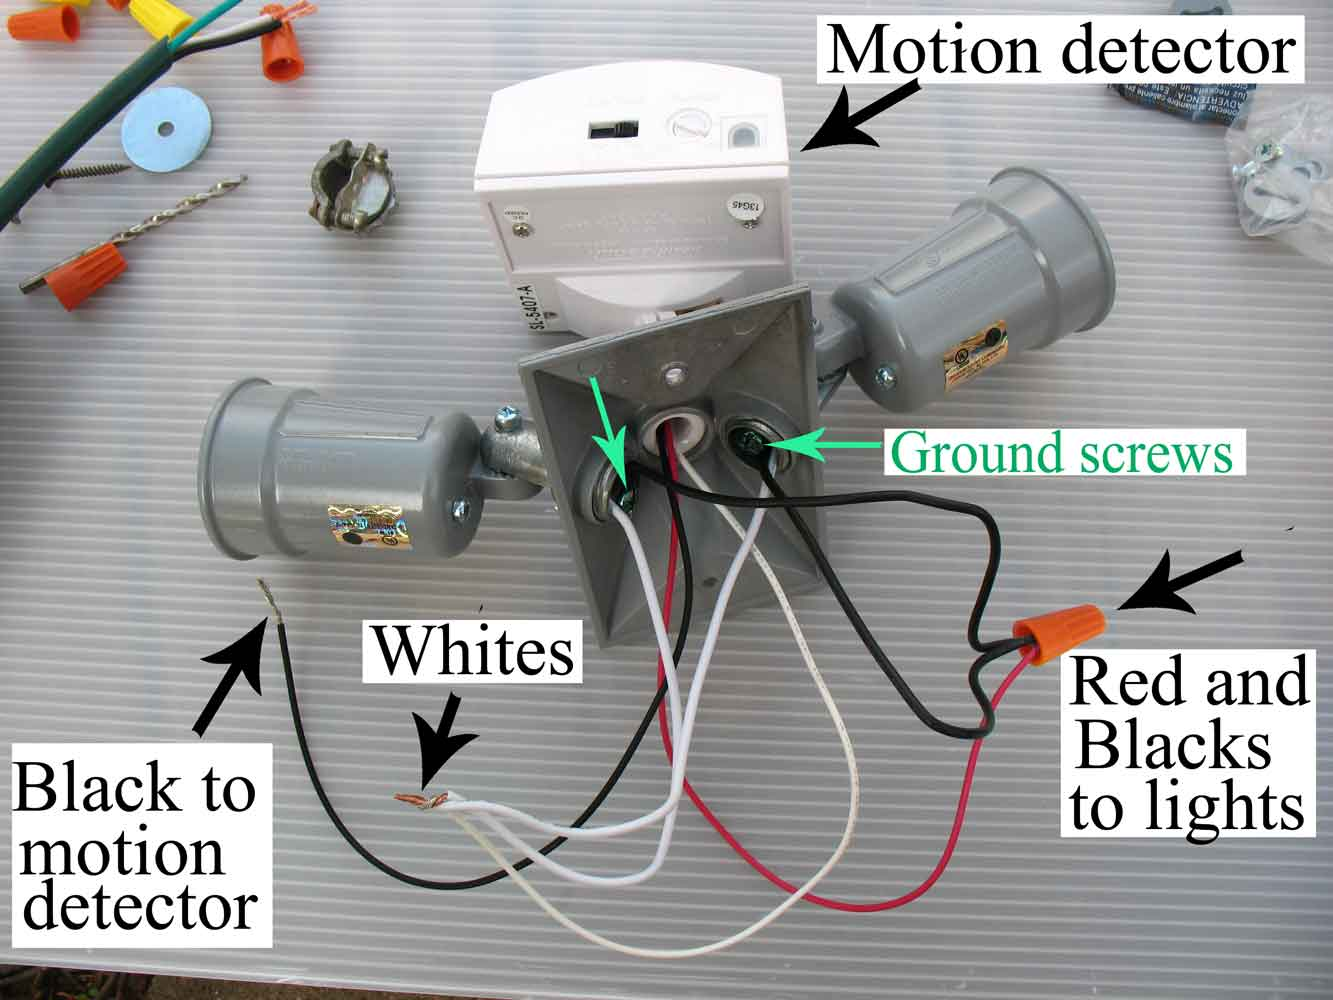 ceiling fan wiring diagram separate switches mitsubishi lancer alternator how to wire motion sensor/ occupancy sensors